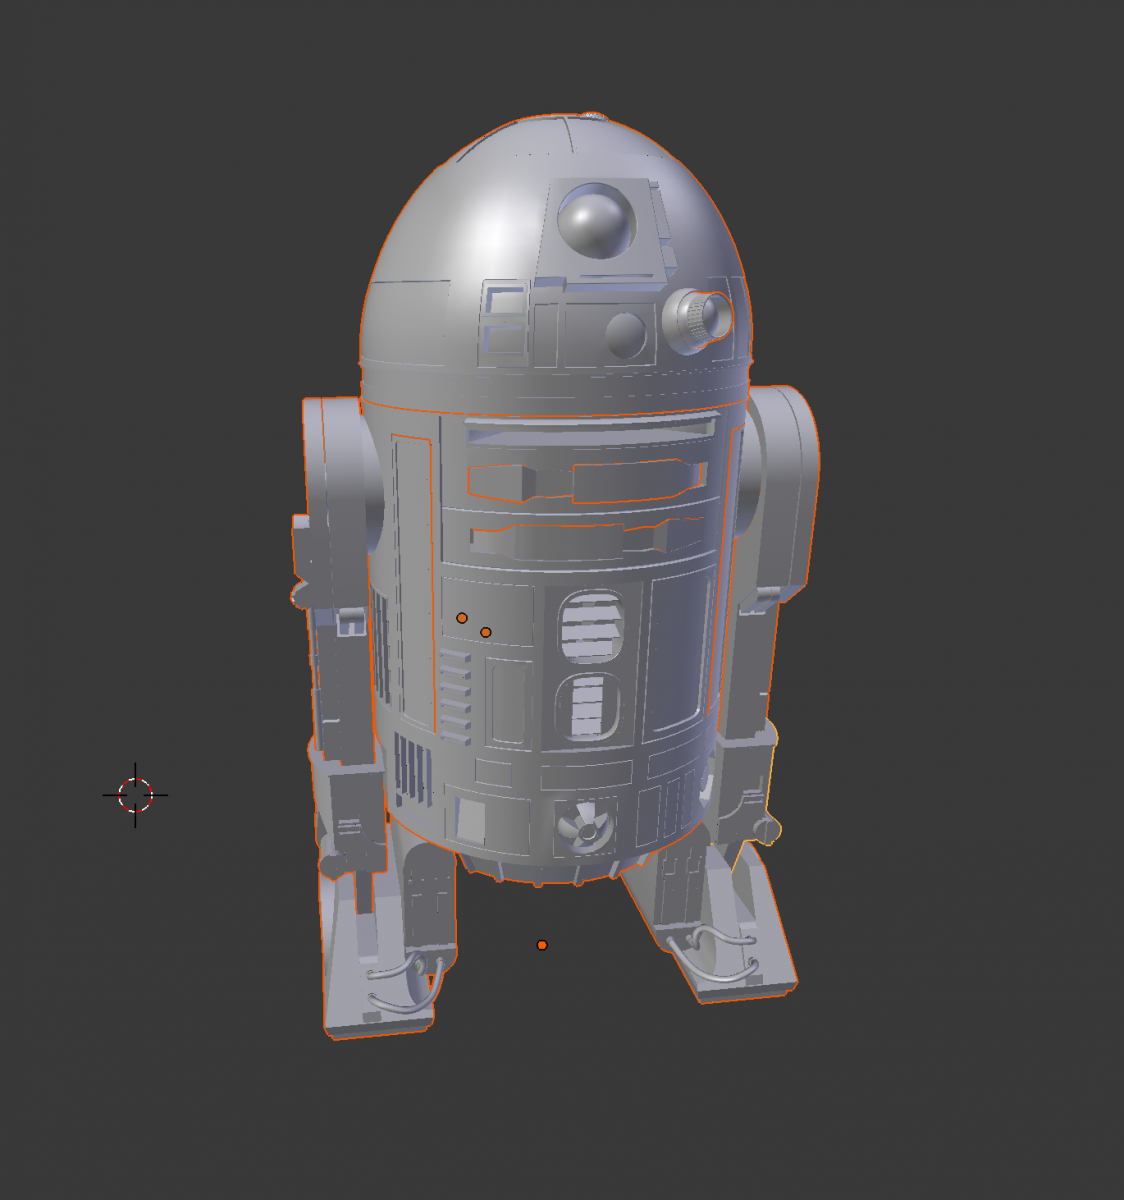 Render 3D Star Wars: The Force Awakens models in Blender and Three